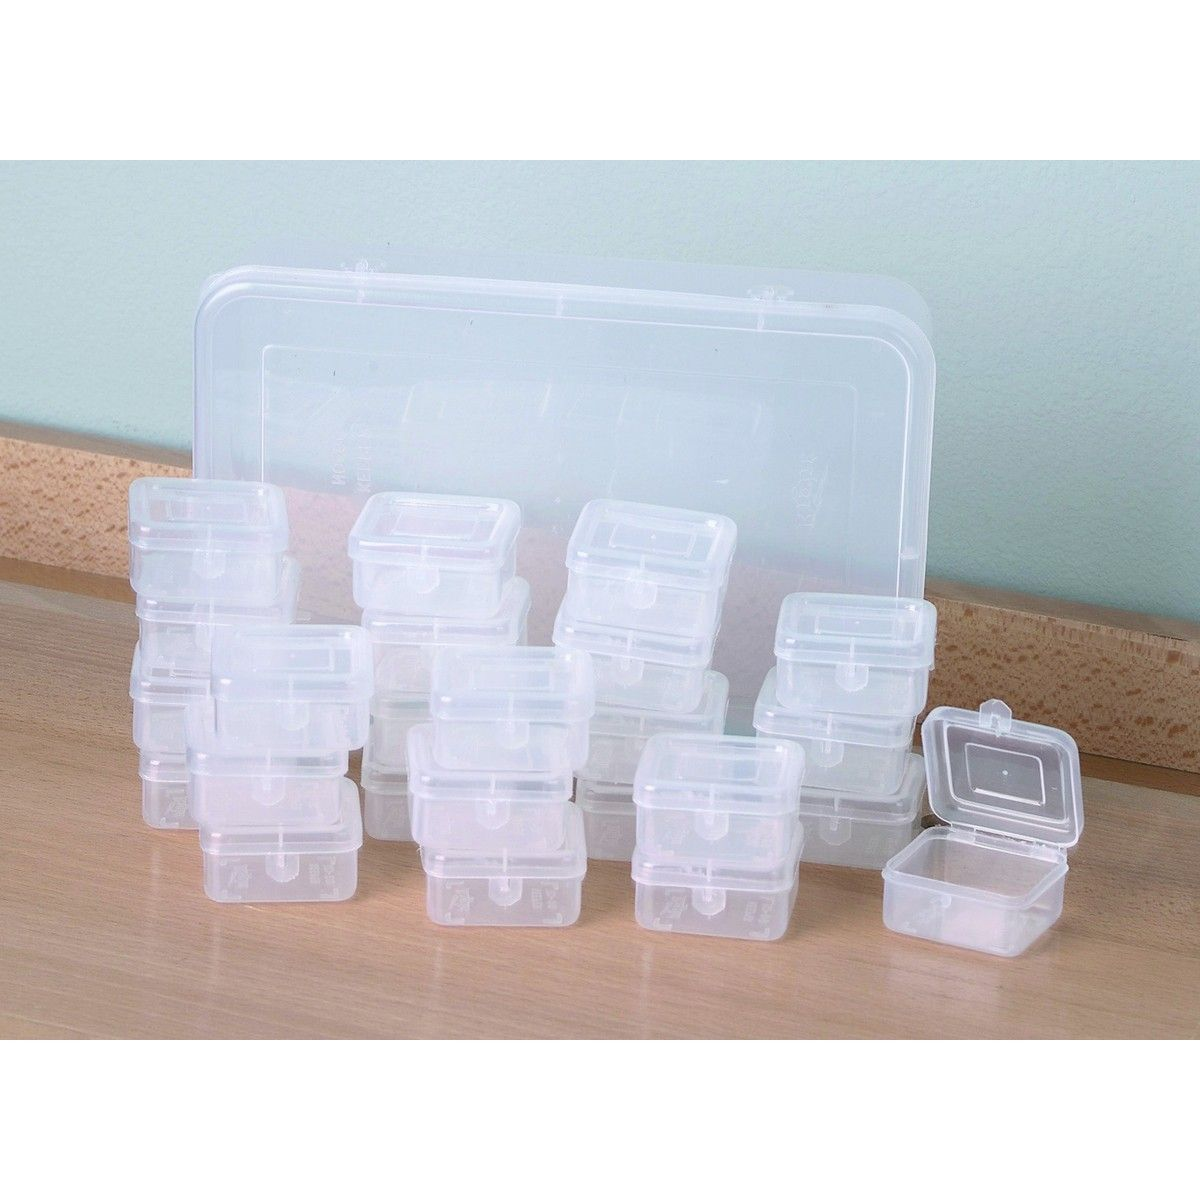 6-pc Plastic Craft Storage Containers Beads Pills Hobby